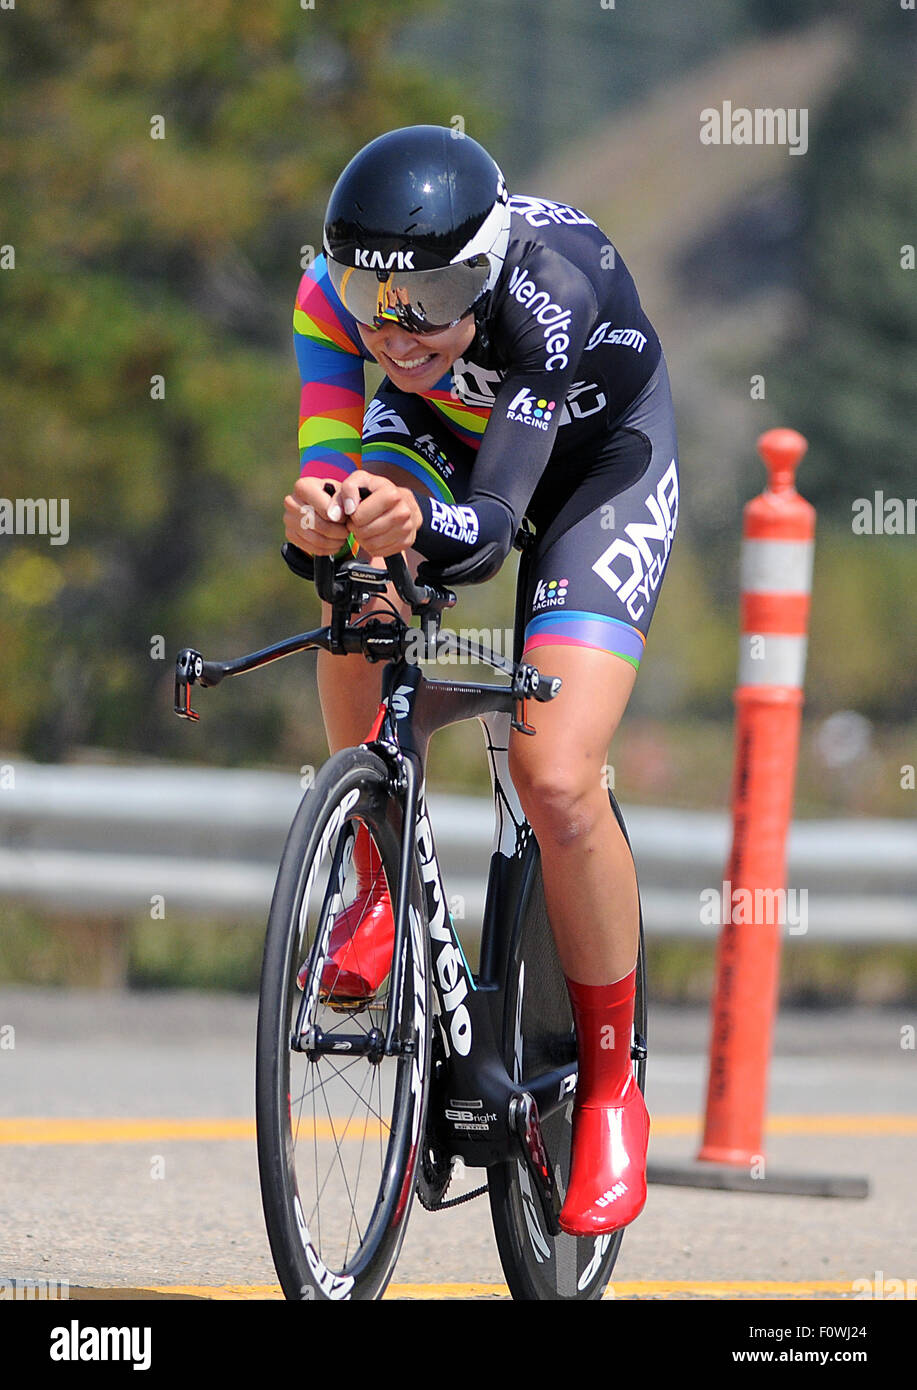 Breckenridge, Colorado, USA. 21st August, 2015. DNA Cycling rider, Tayler Wiles, during the inaugural women's - Stock Image